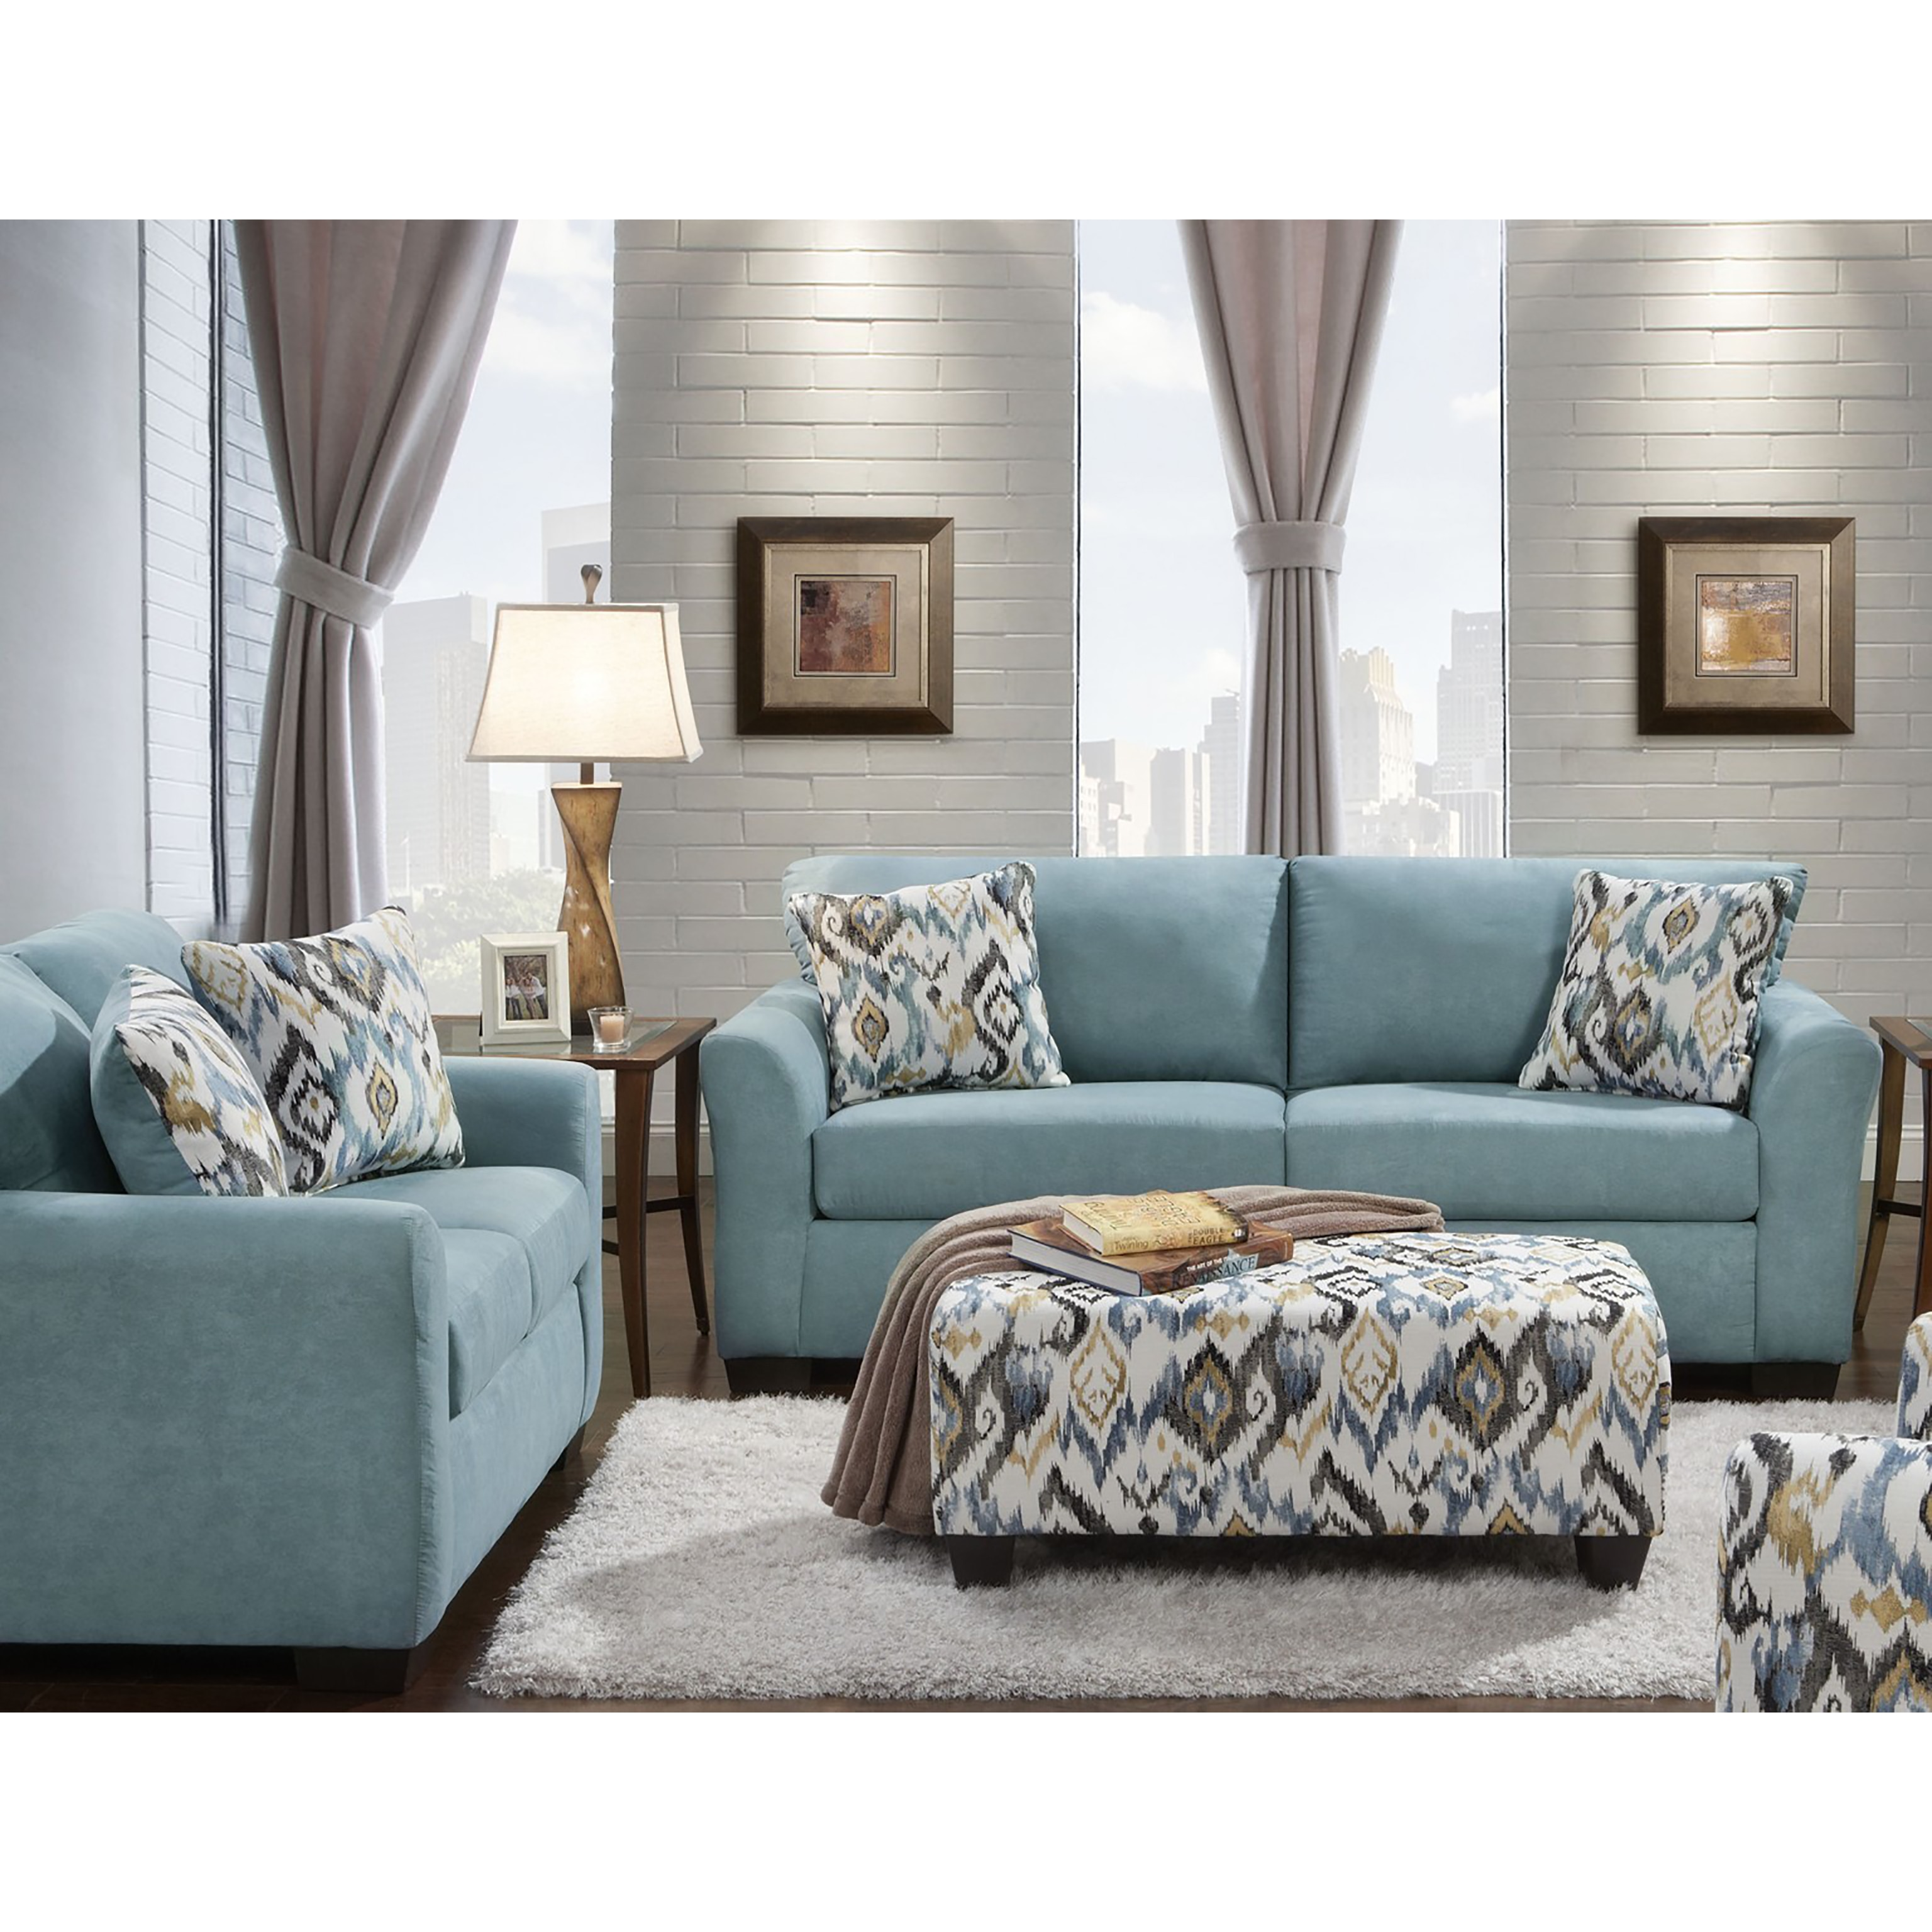 Sofa Trendz Cairo Blue 3 Piece Loveseat And Ottoman Set Free Shipping Today 14780713